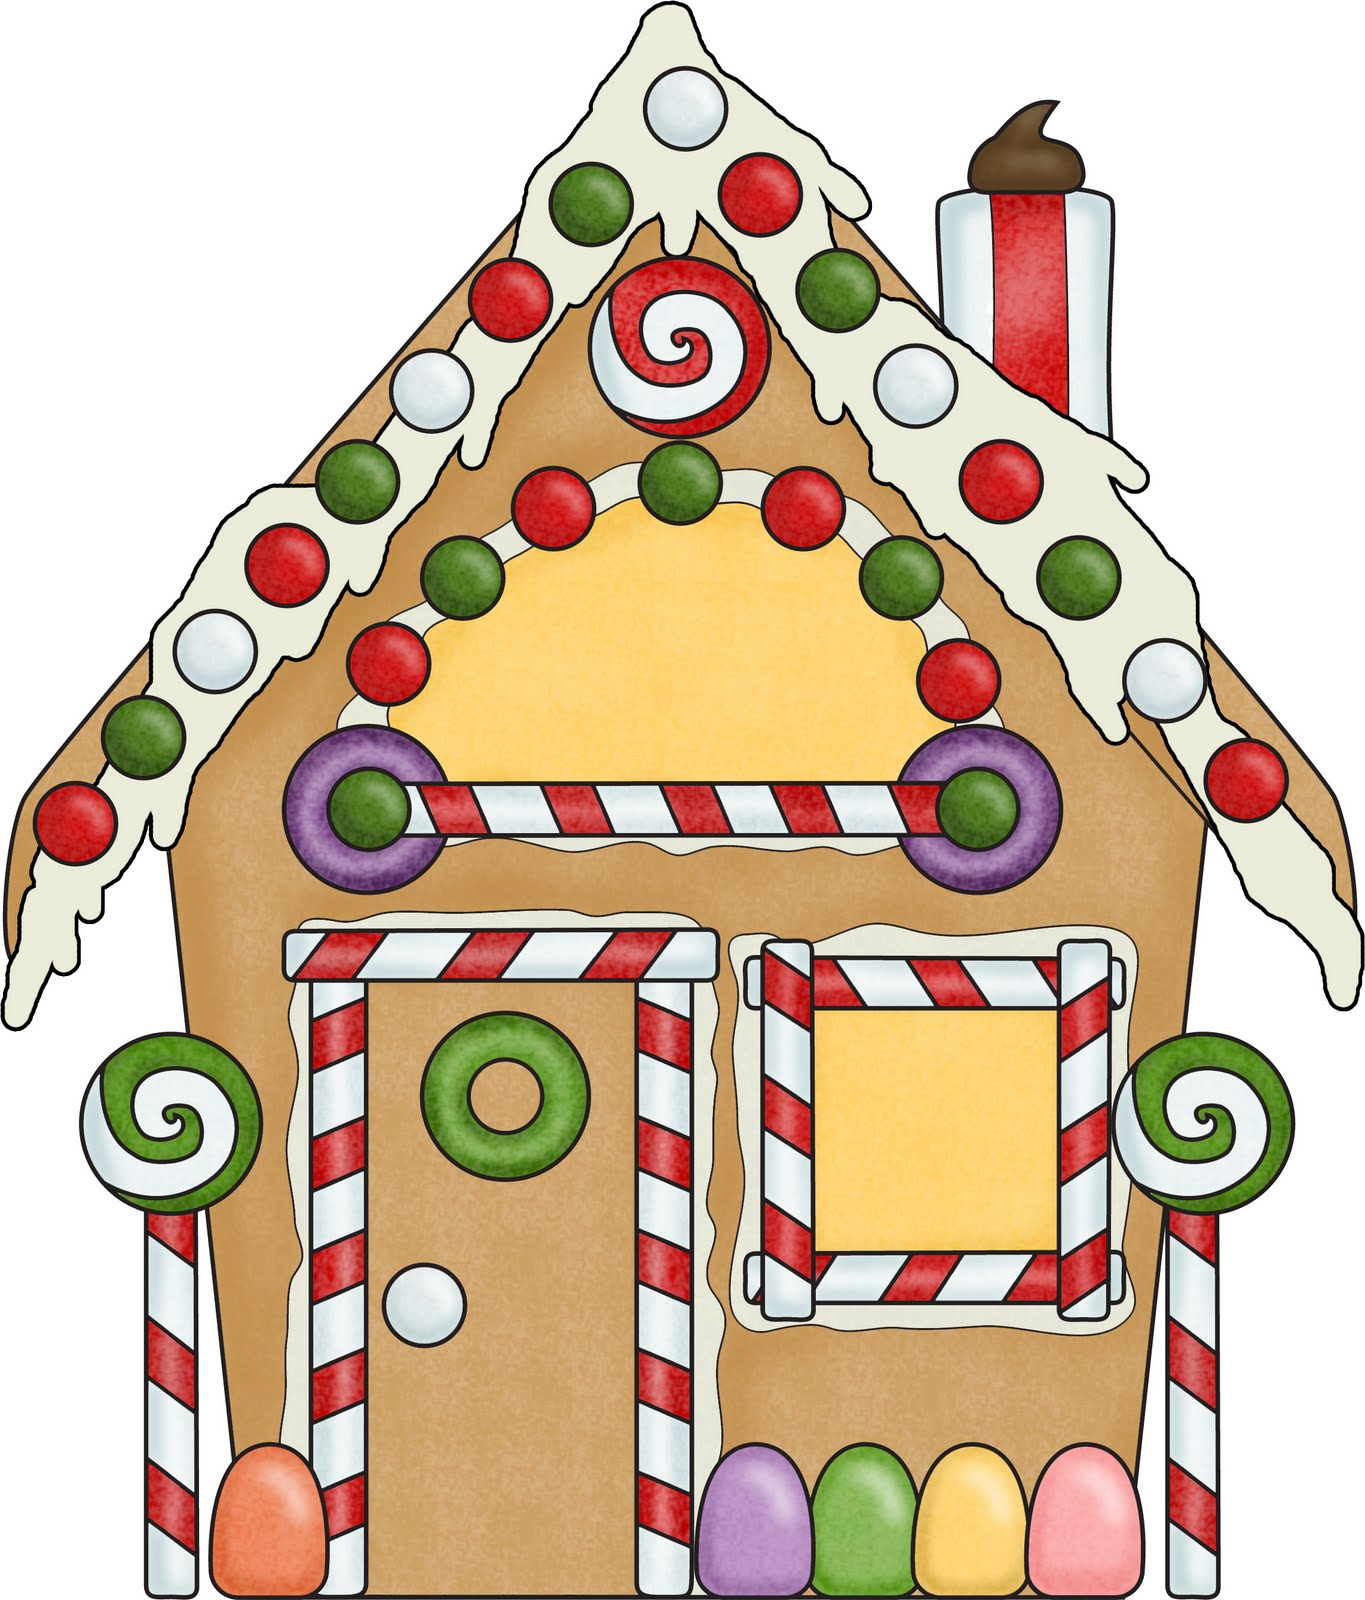 free gingerbread house clipart - photo #6